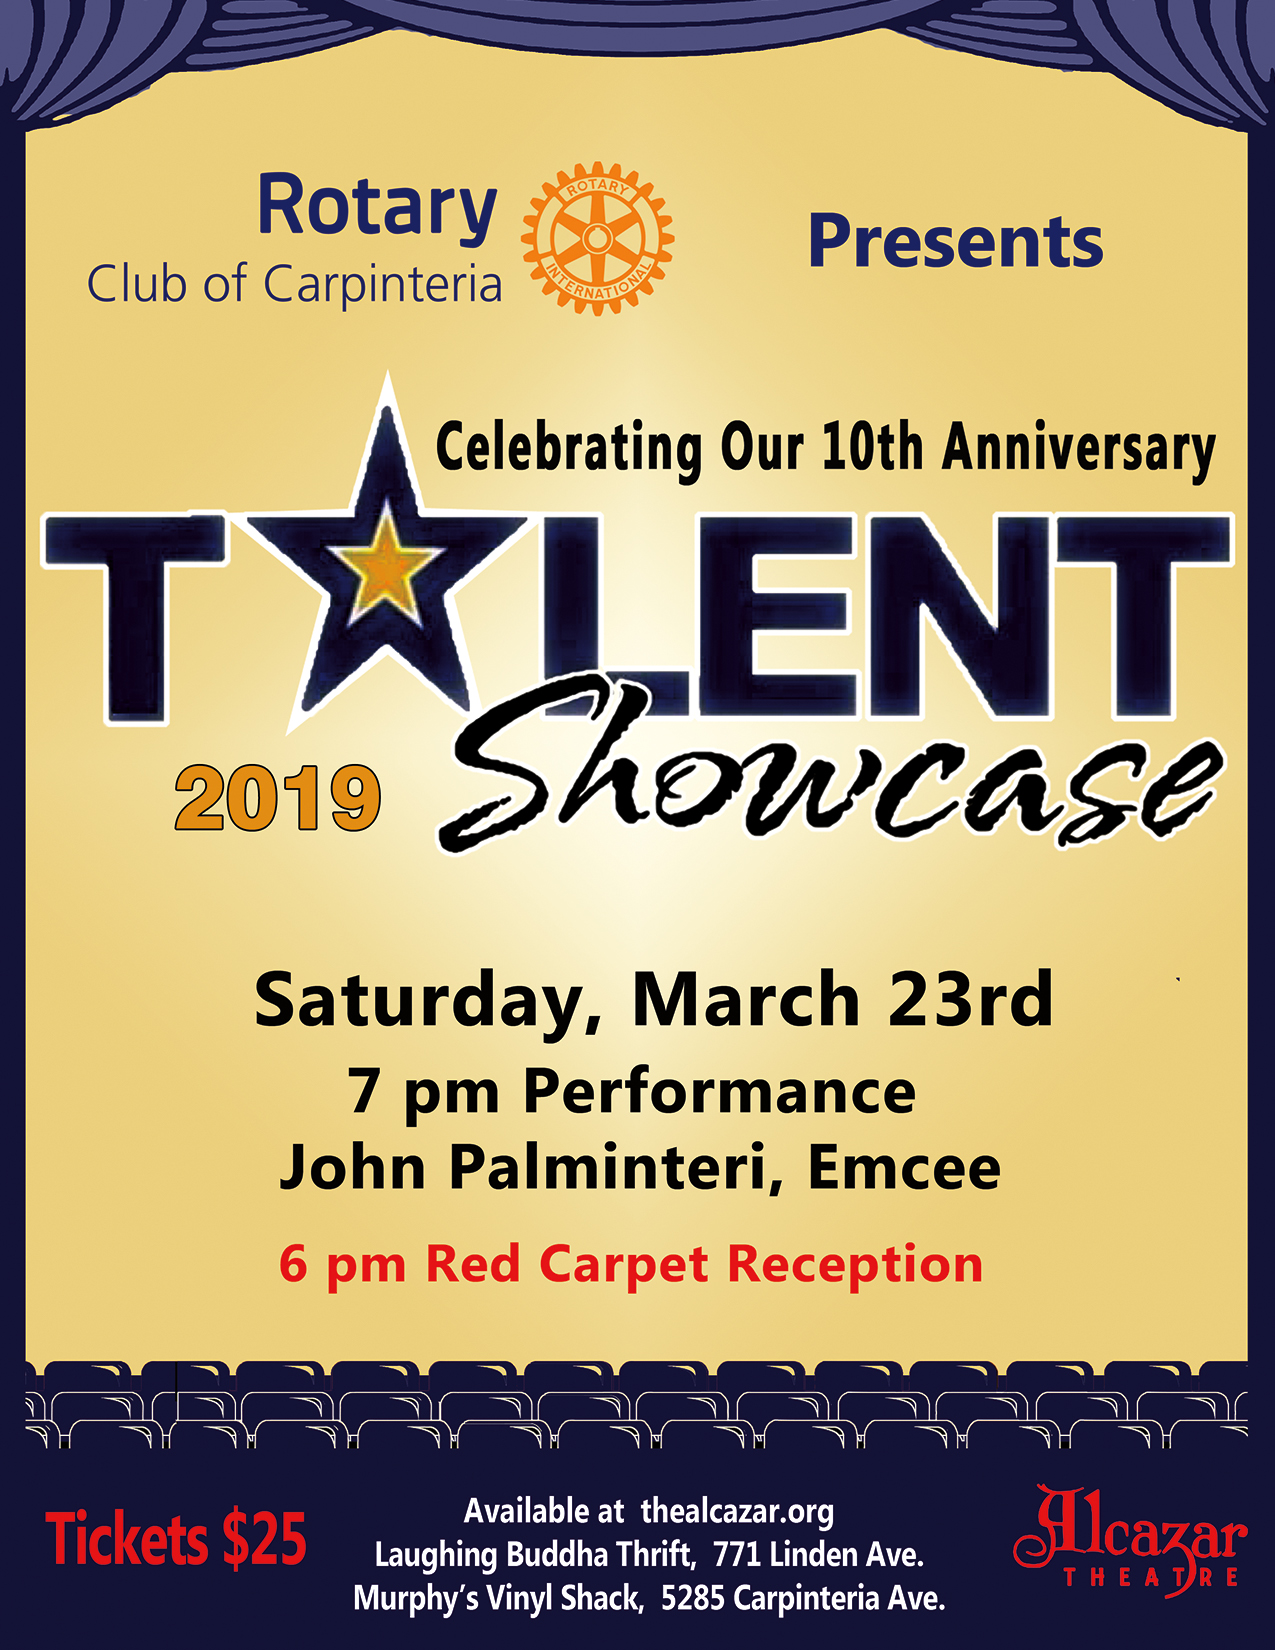 10th Anniversary Rotary Talent Showcase